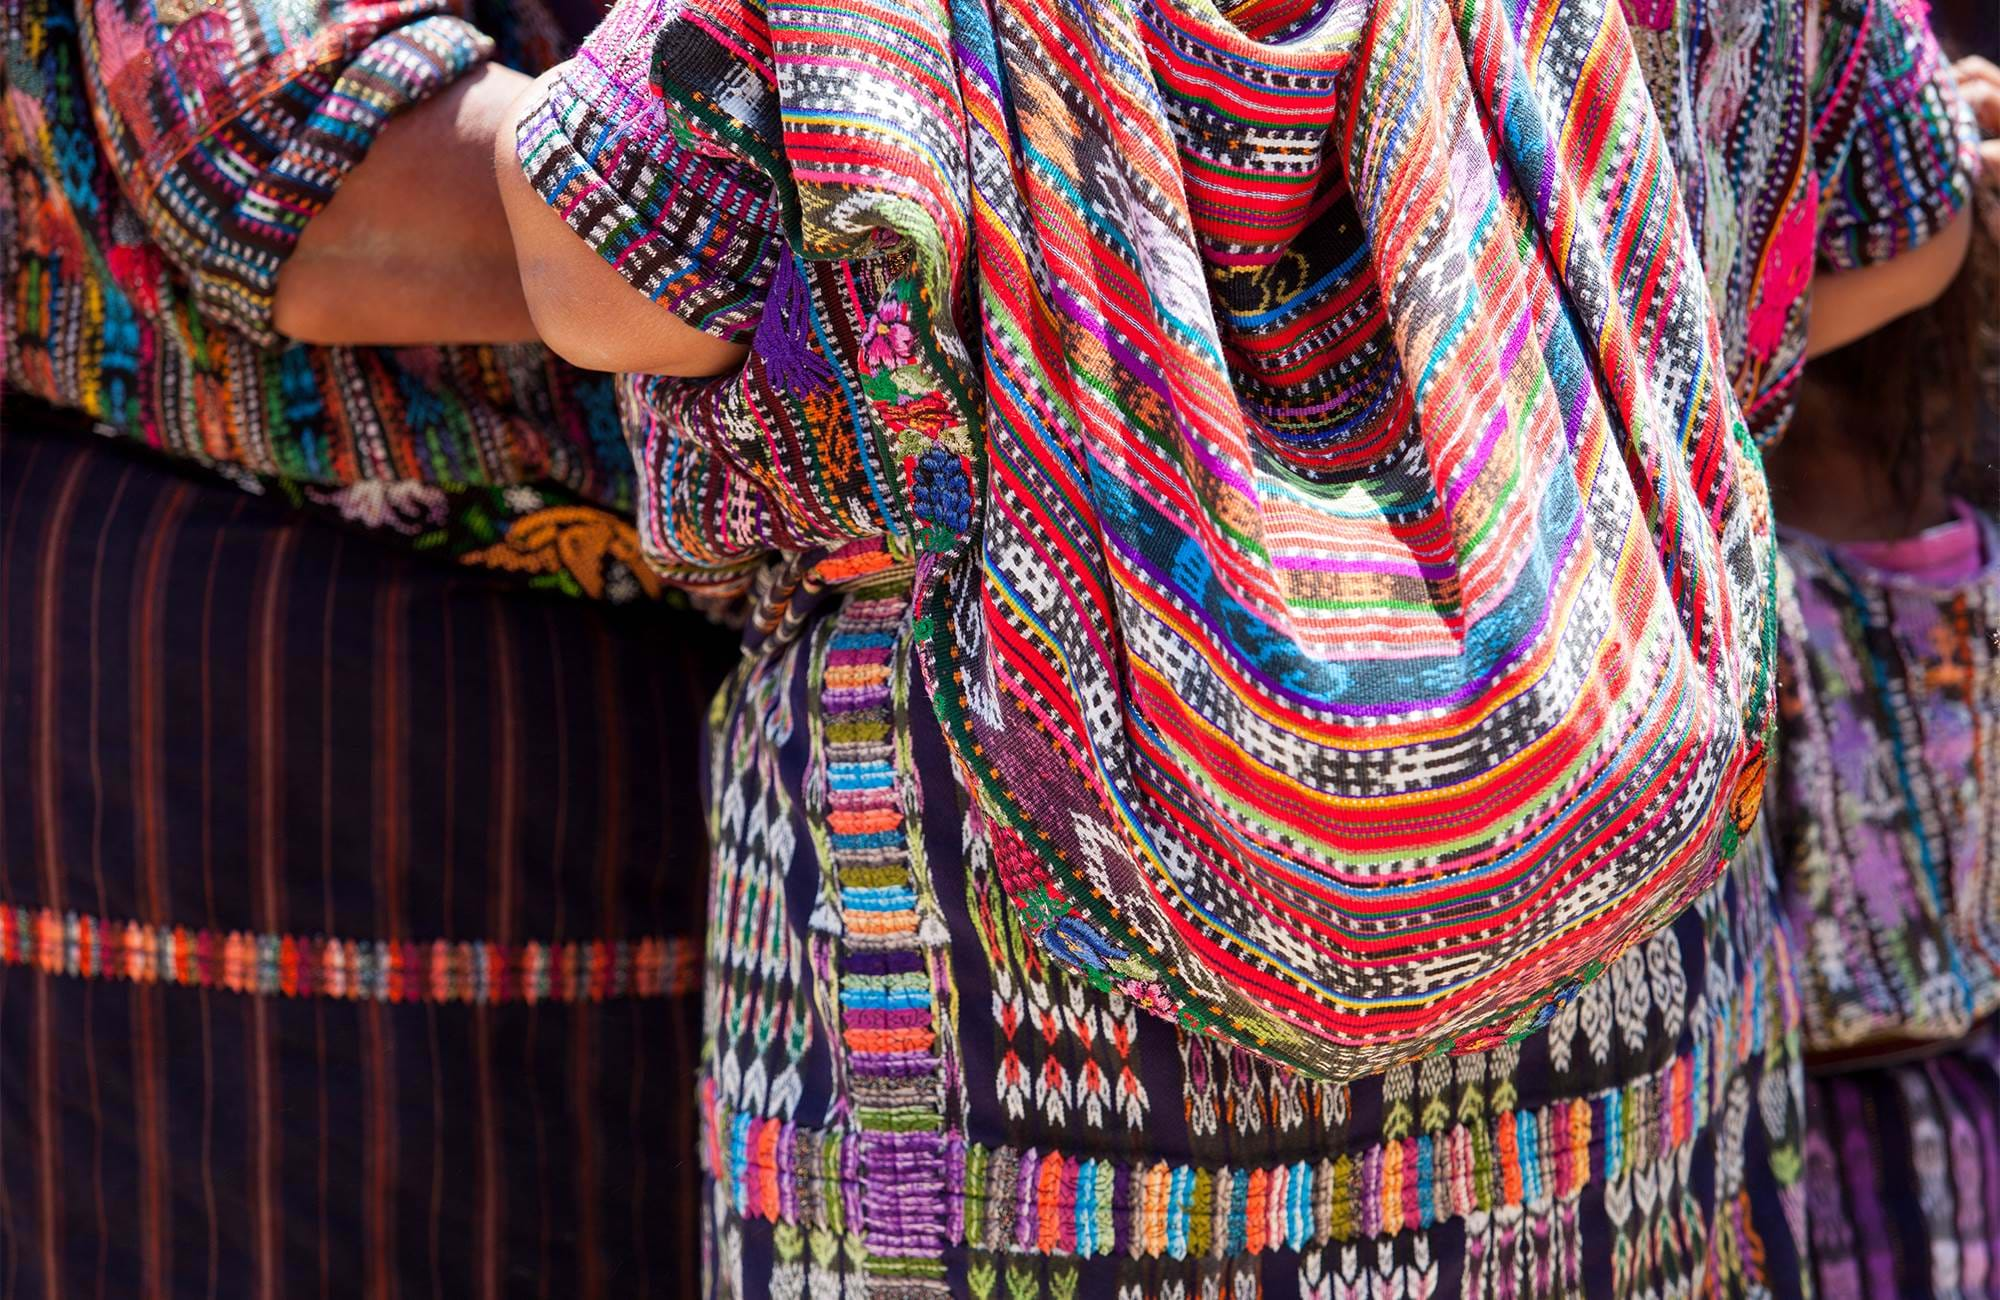 guatemala-women-traditional-clothing-cover